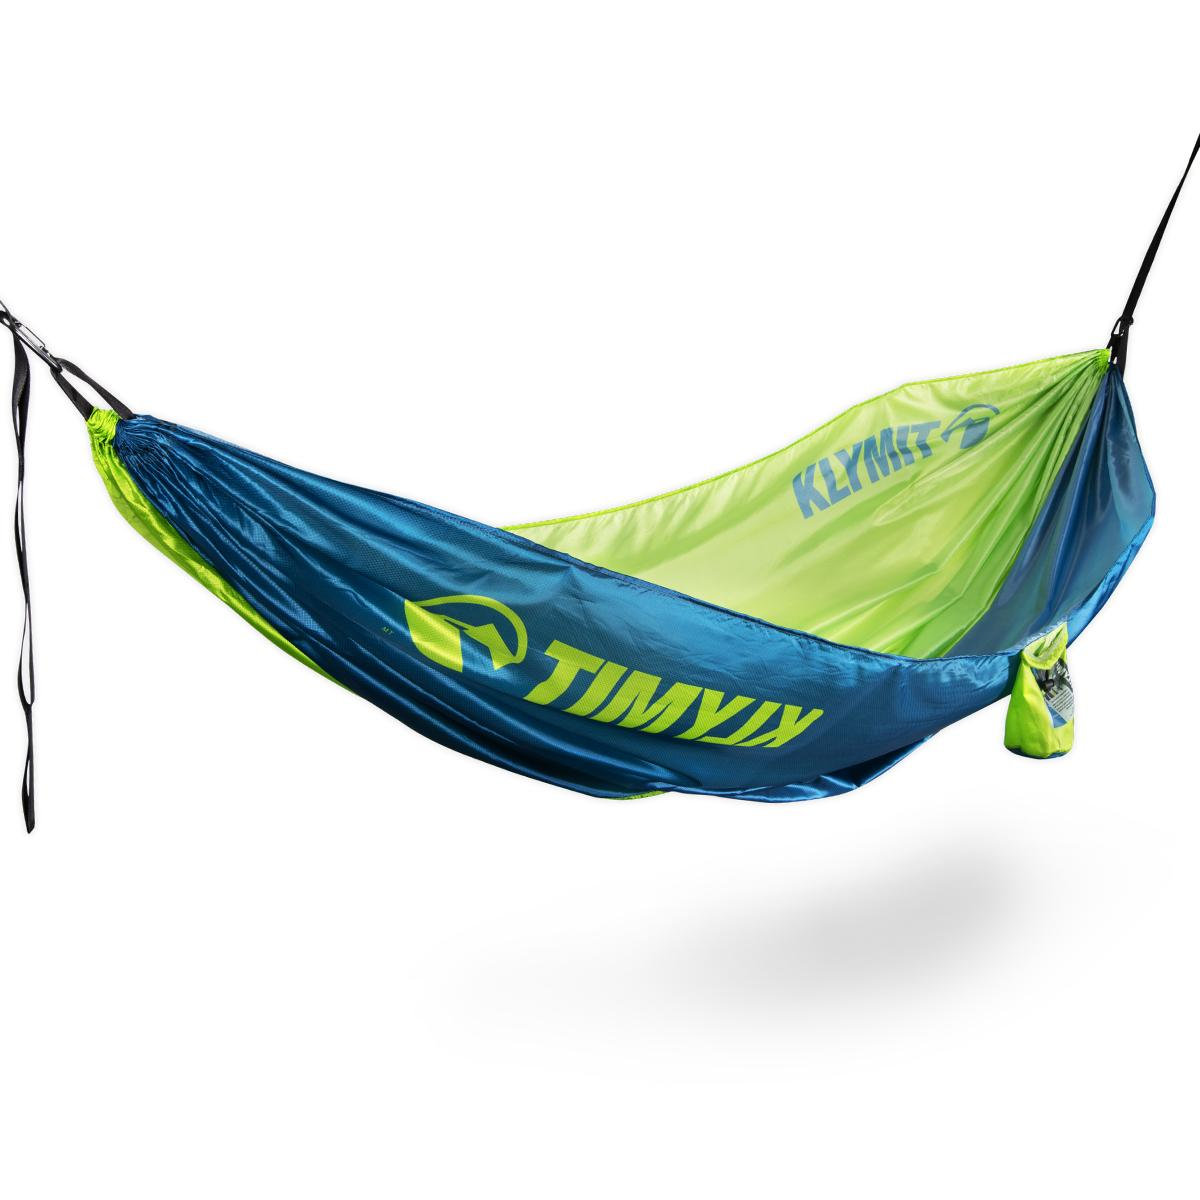 KLYMIT Traverse HAMMOCK 2-Person Backpacking Camping - FACTO